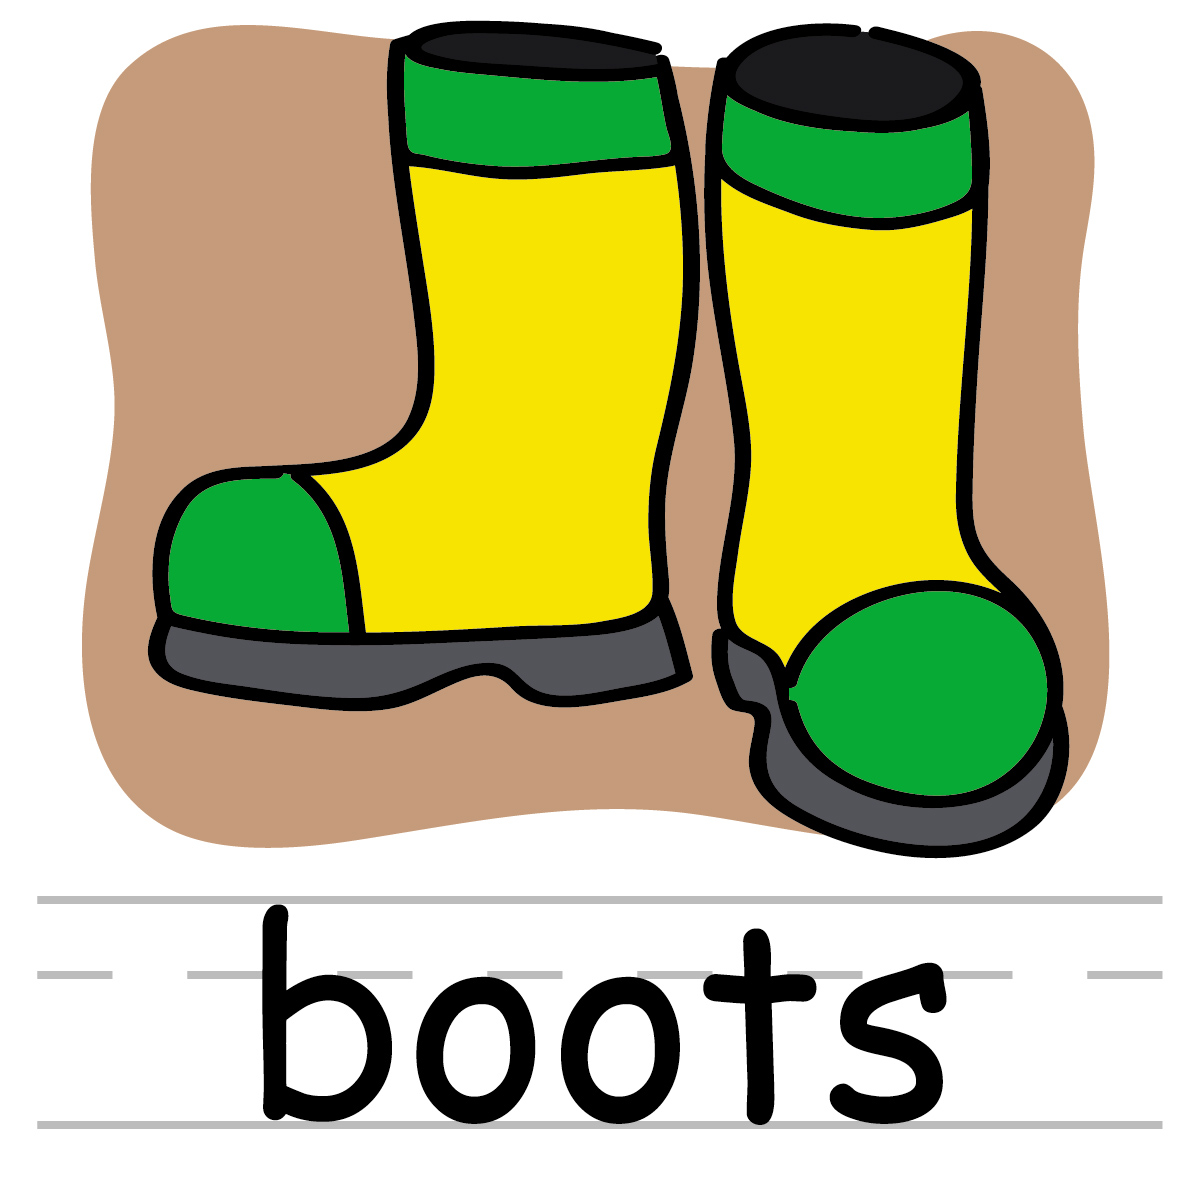 Kid putting shoes away clipart graphic free stock Put On Clothes Clipart | Free download best Put On Clothes Clipart ... graphic free stock